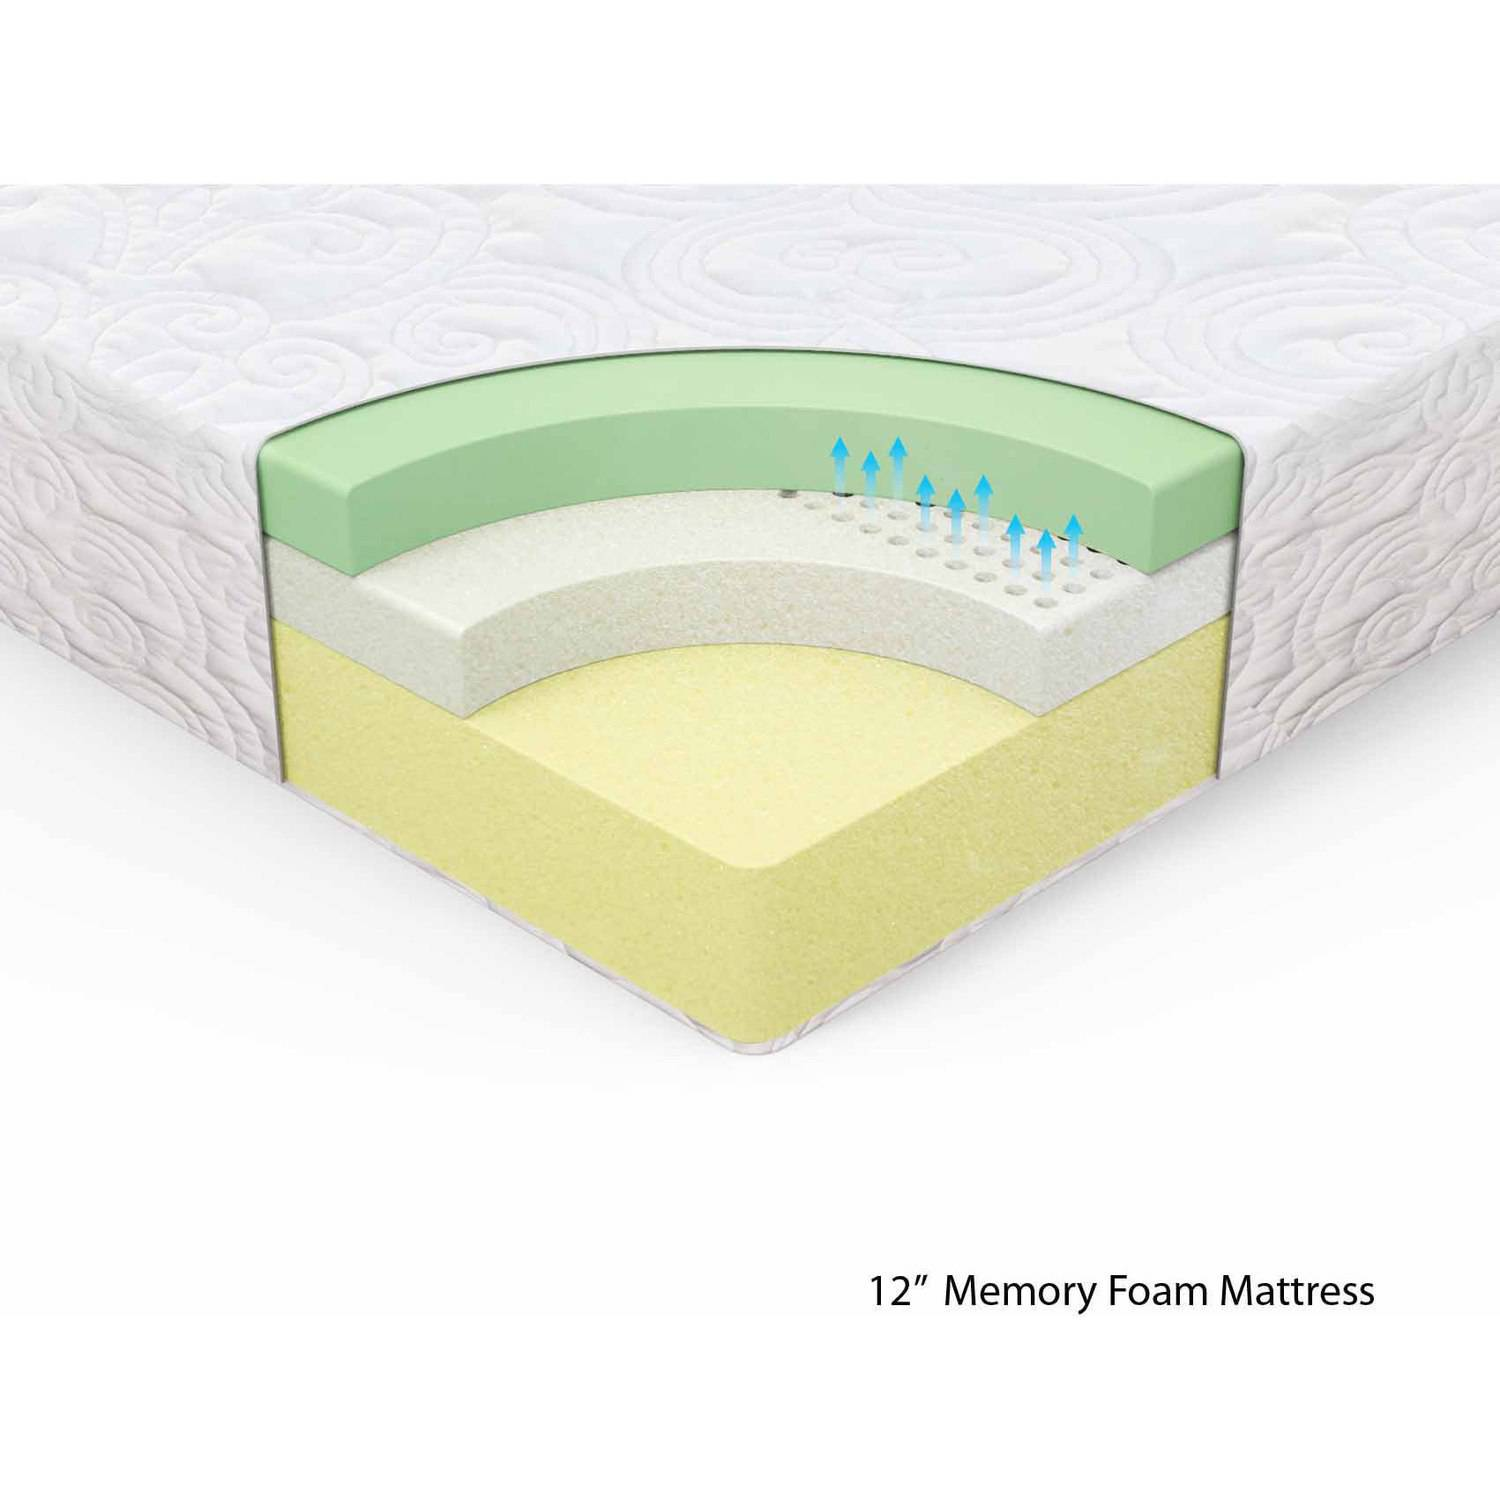 Memory Foam Mattress Buying Guide Memory Foam Talk